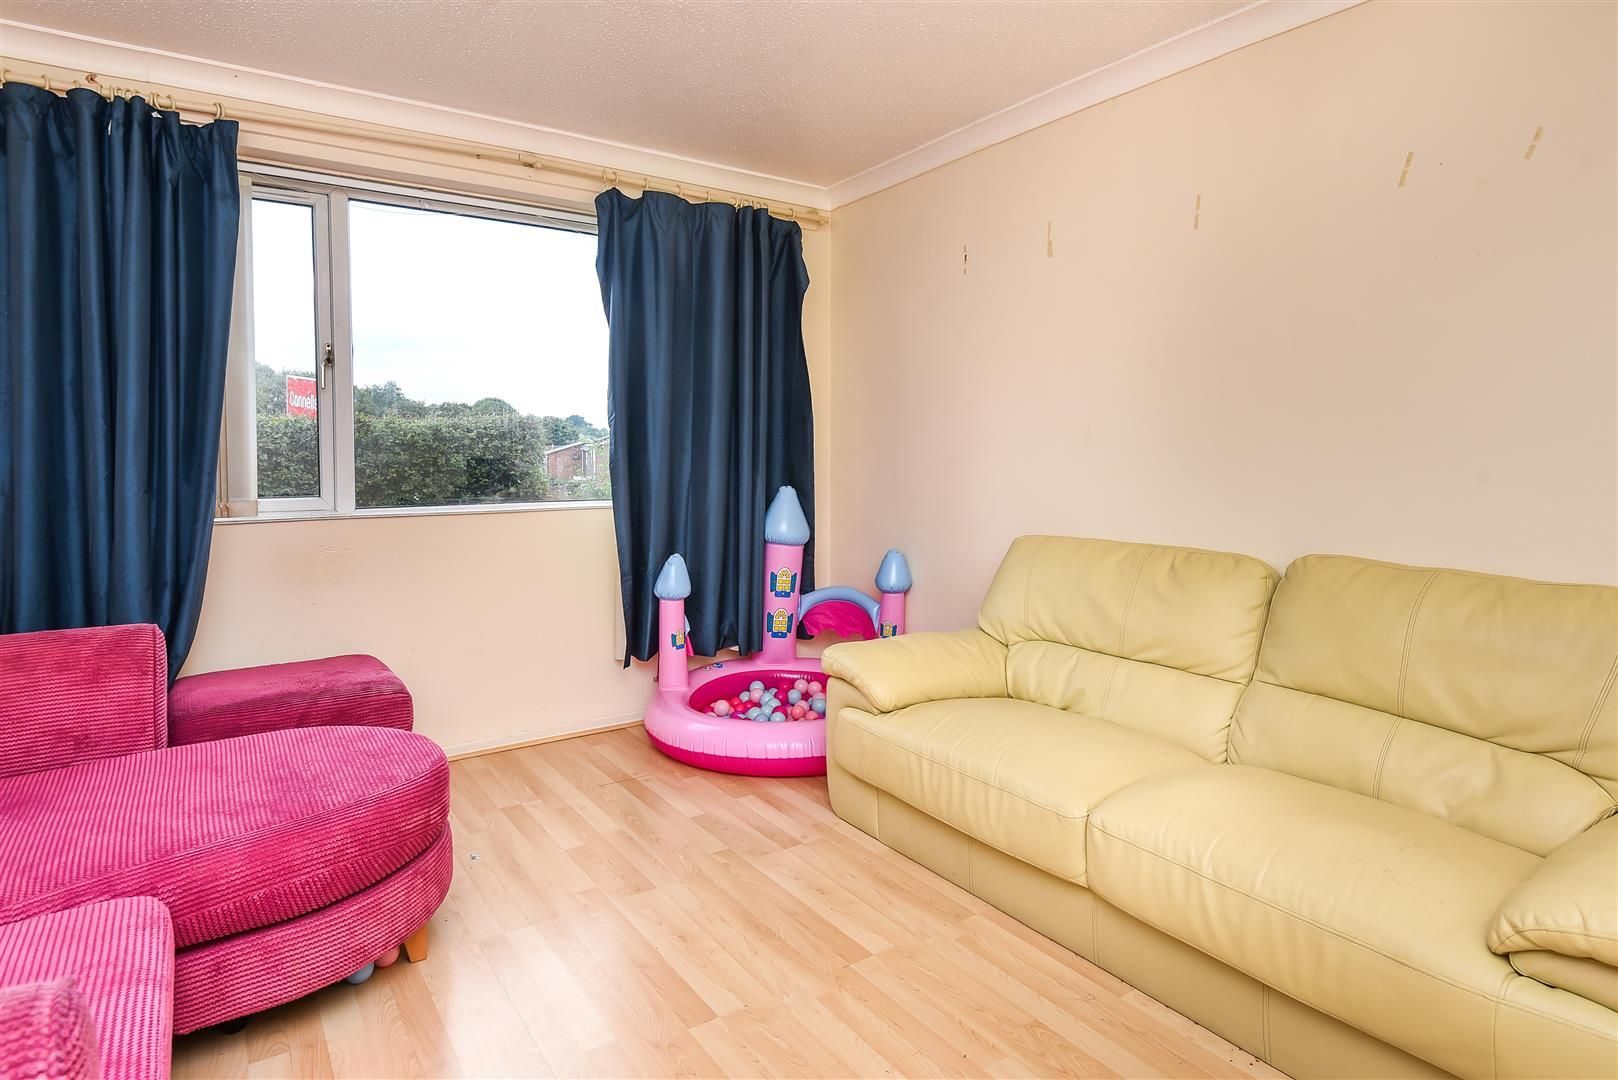 3 bed terraced for sale in Hereford  - Property Image 4